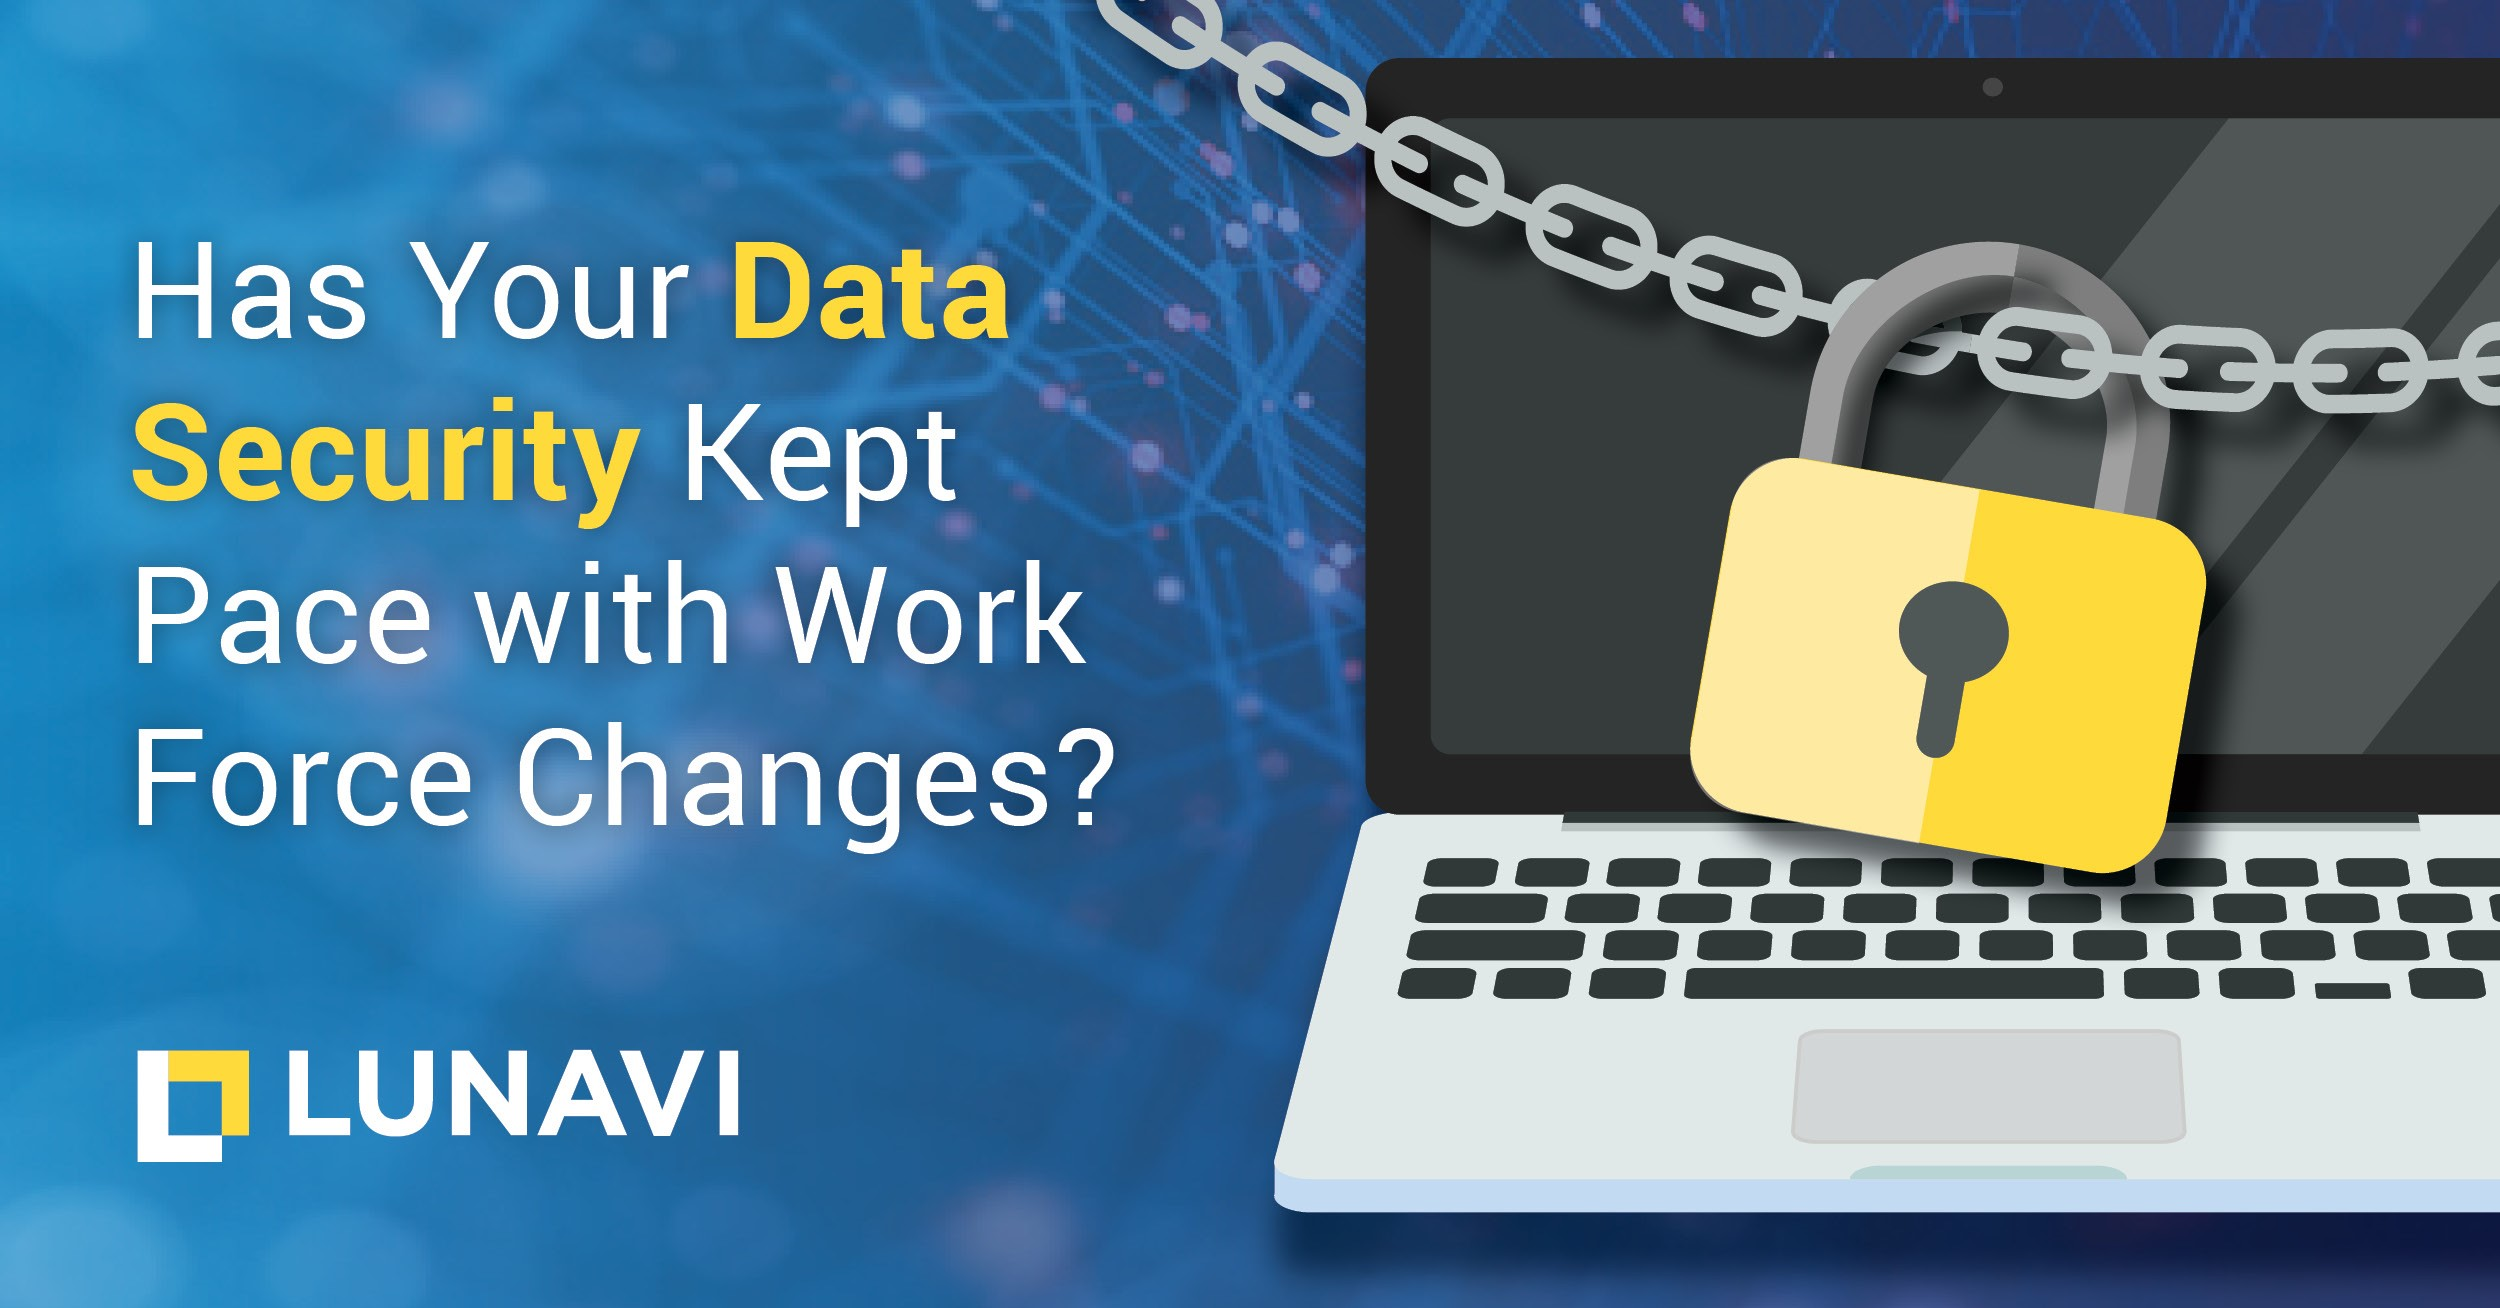 Has Your Data Security Kept Pace with Work Force Changes?